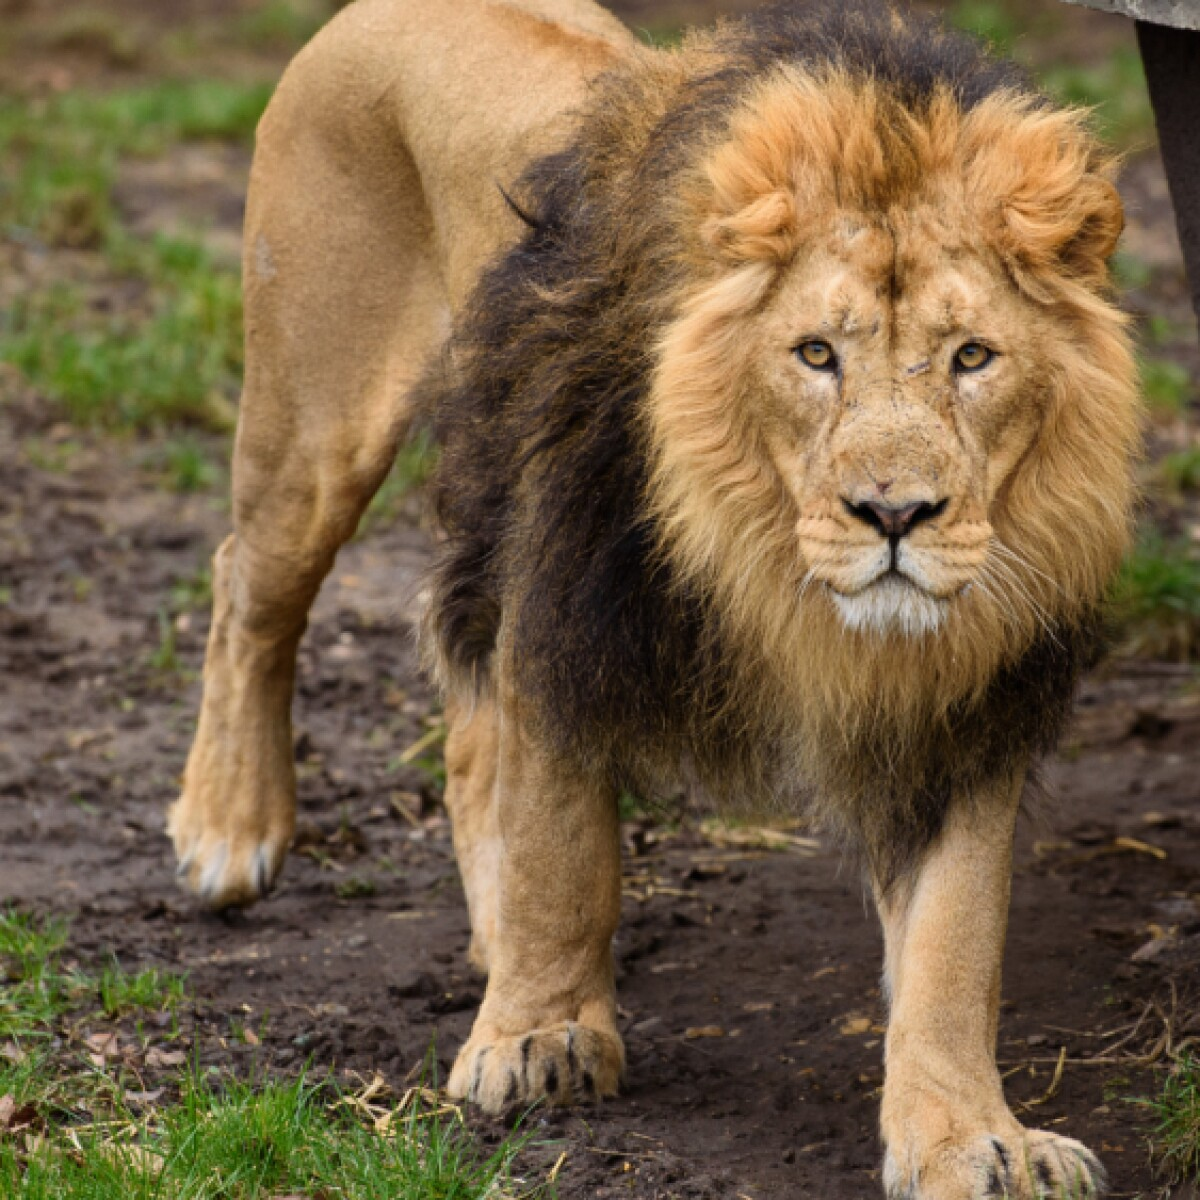 22 year old employee killed by lion that escaped enclosure at animal